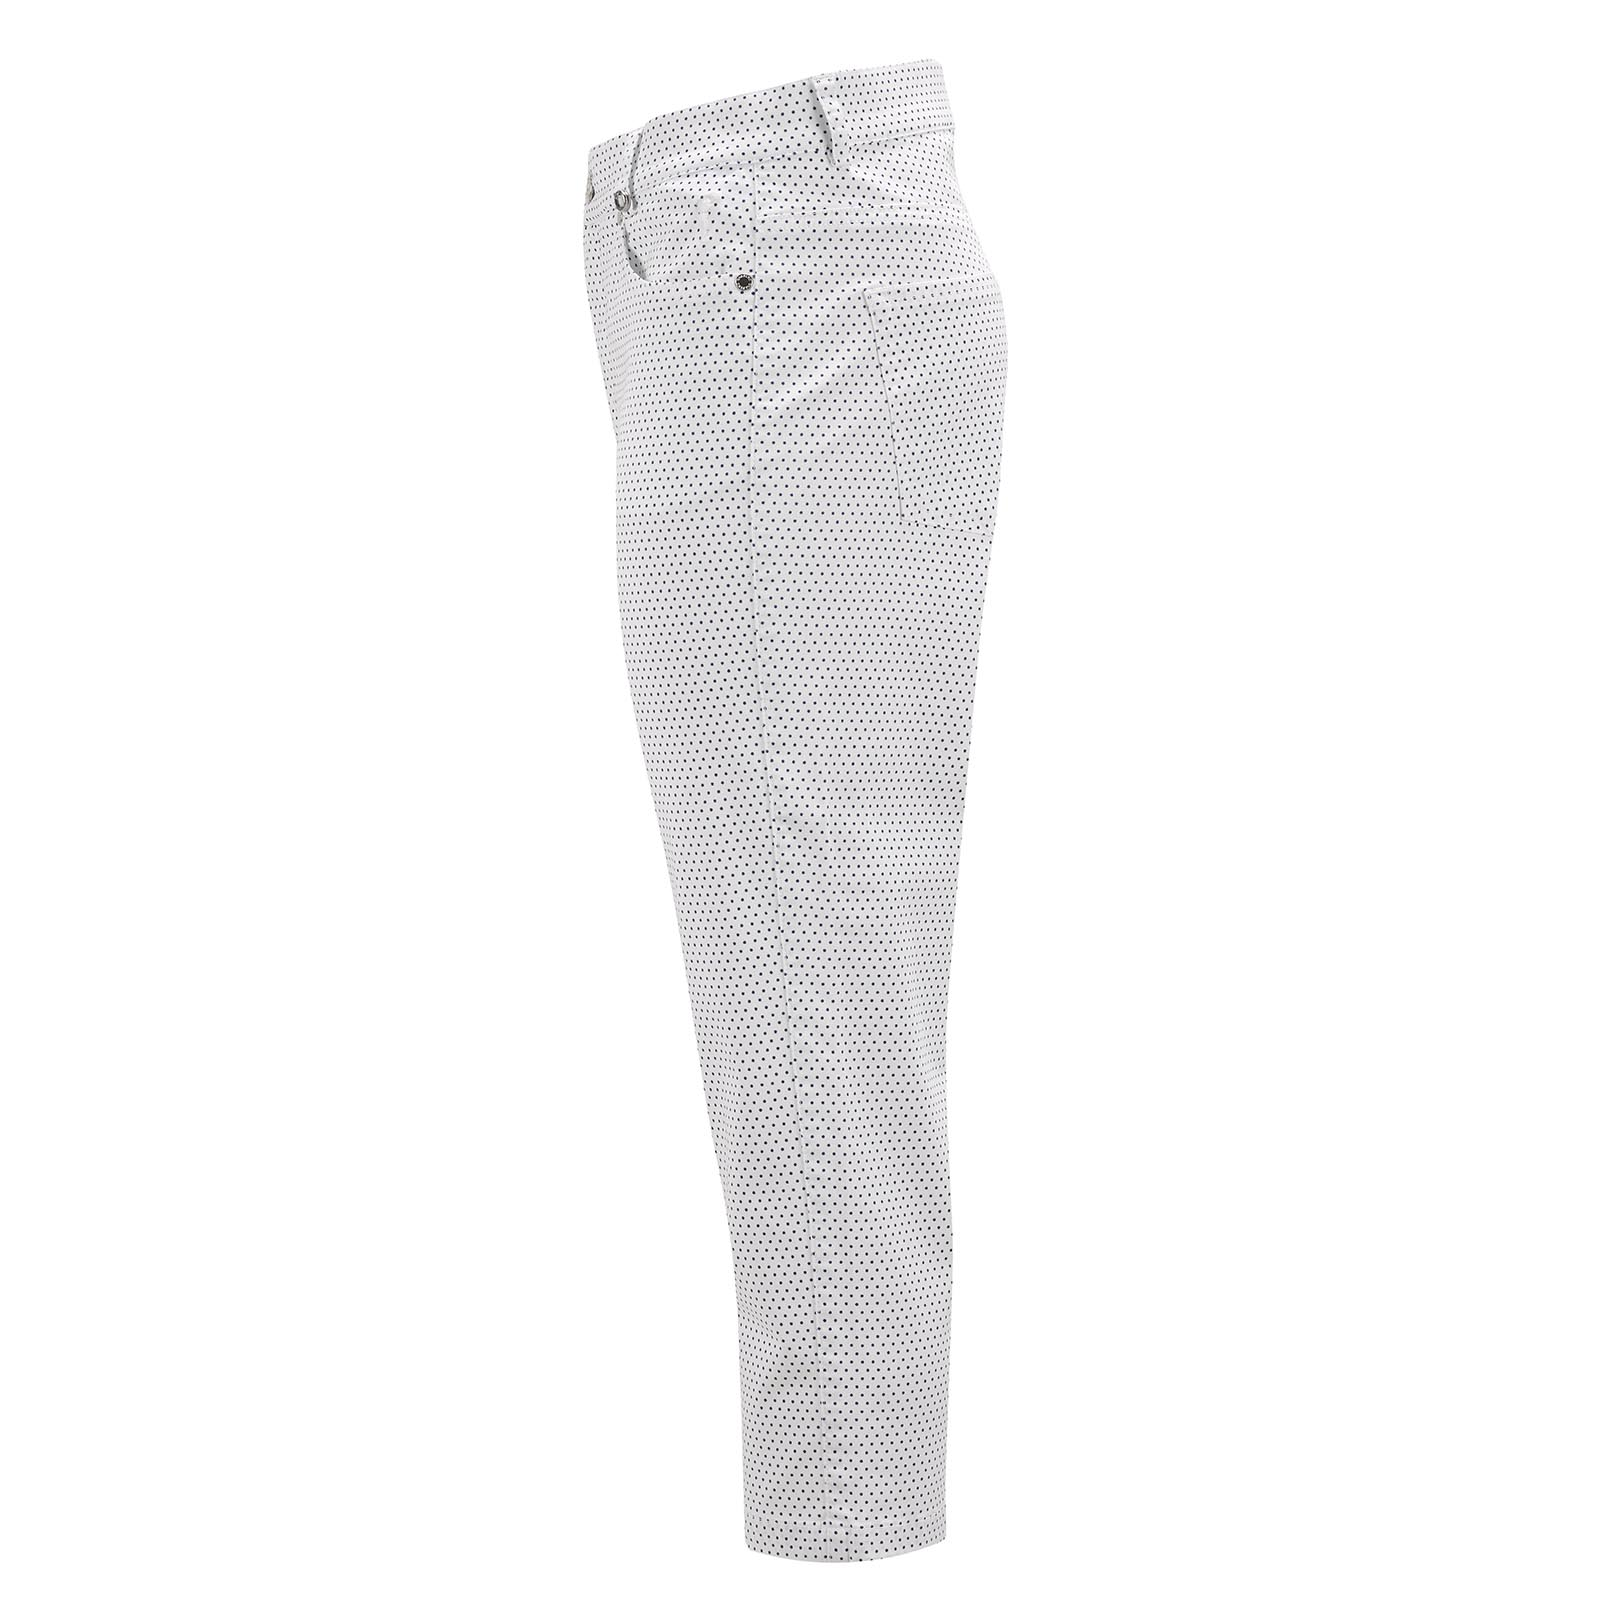 Cotton Blend Damen Golf-Caprihose mit modischem Dot-Muster